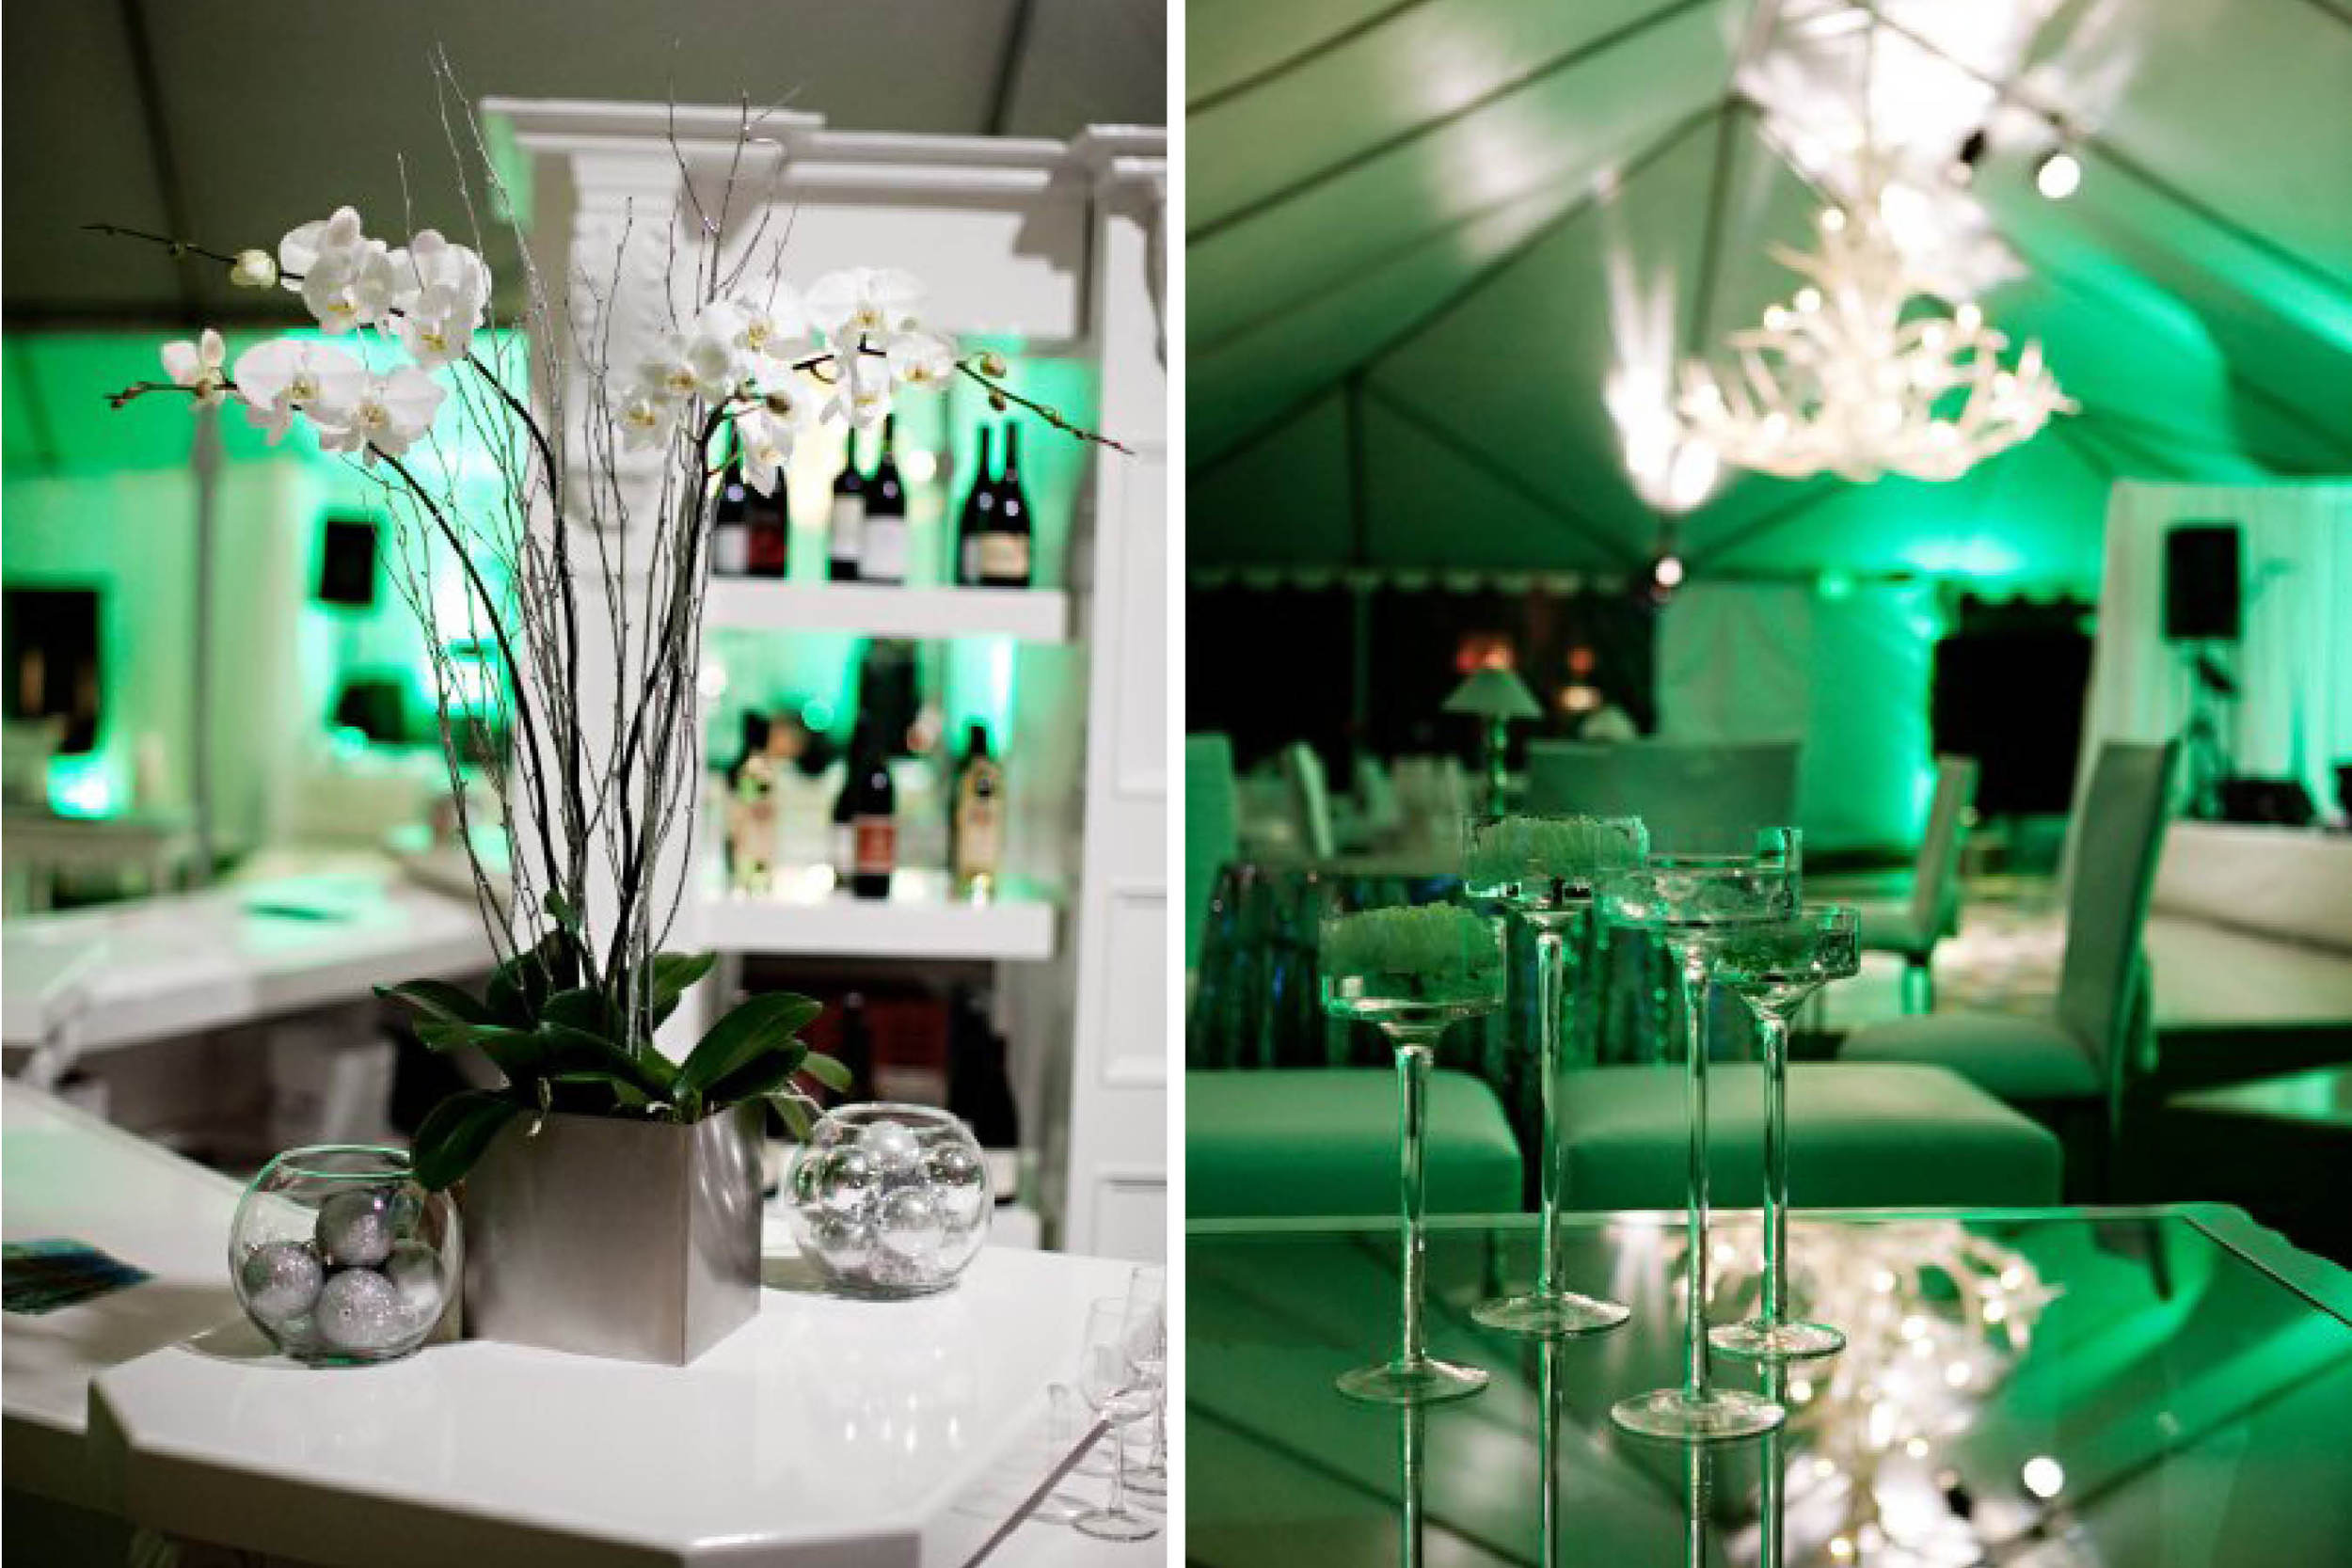 abd-meetings-events-alegria-by-design-corporate-winter-white-bash-destination-management-incentives-experiences (7).jpg